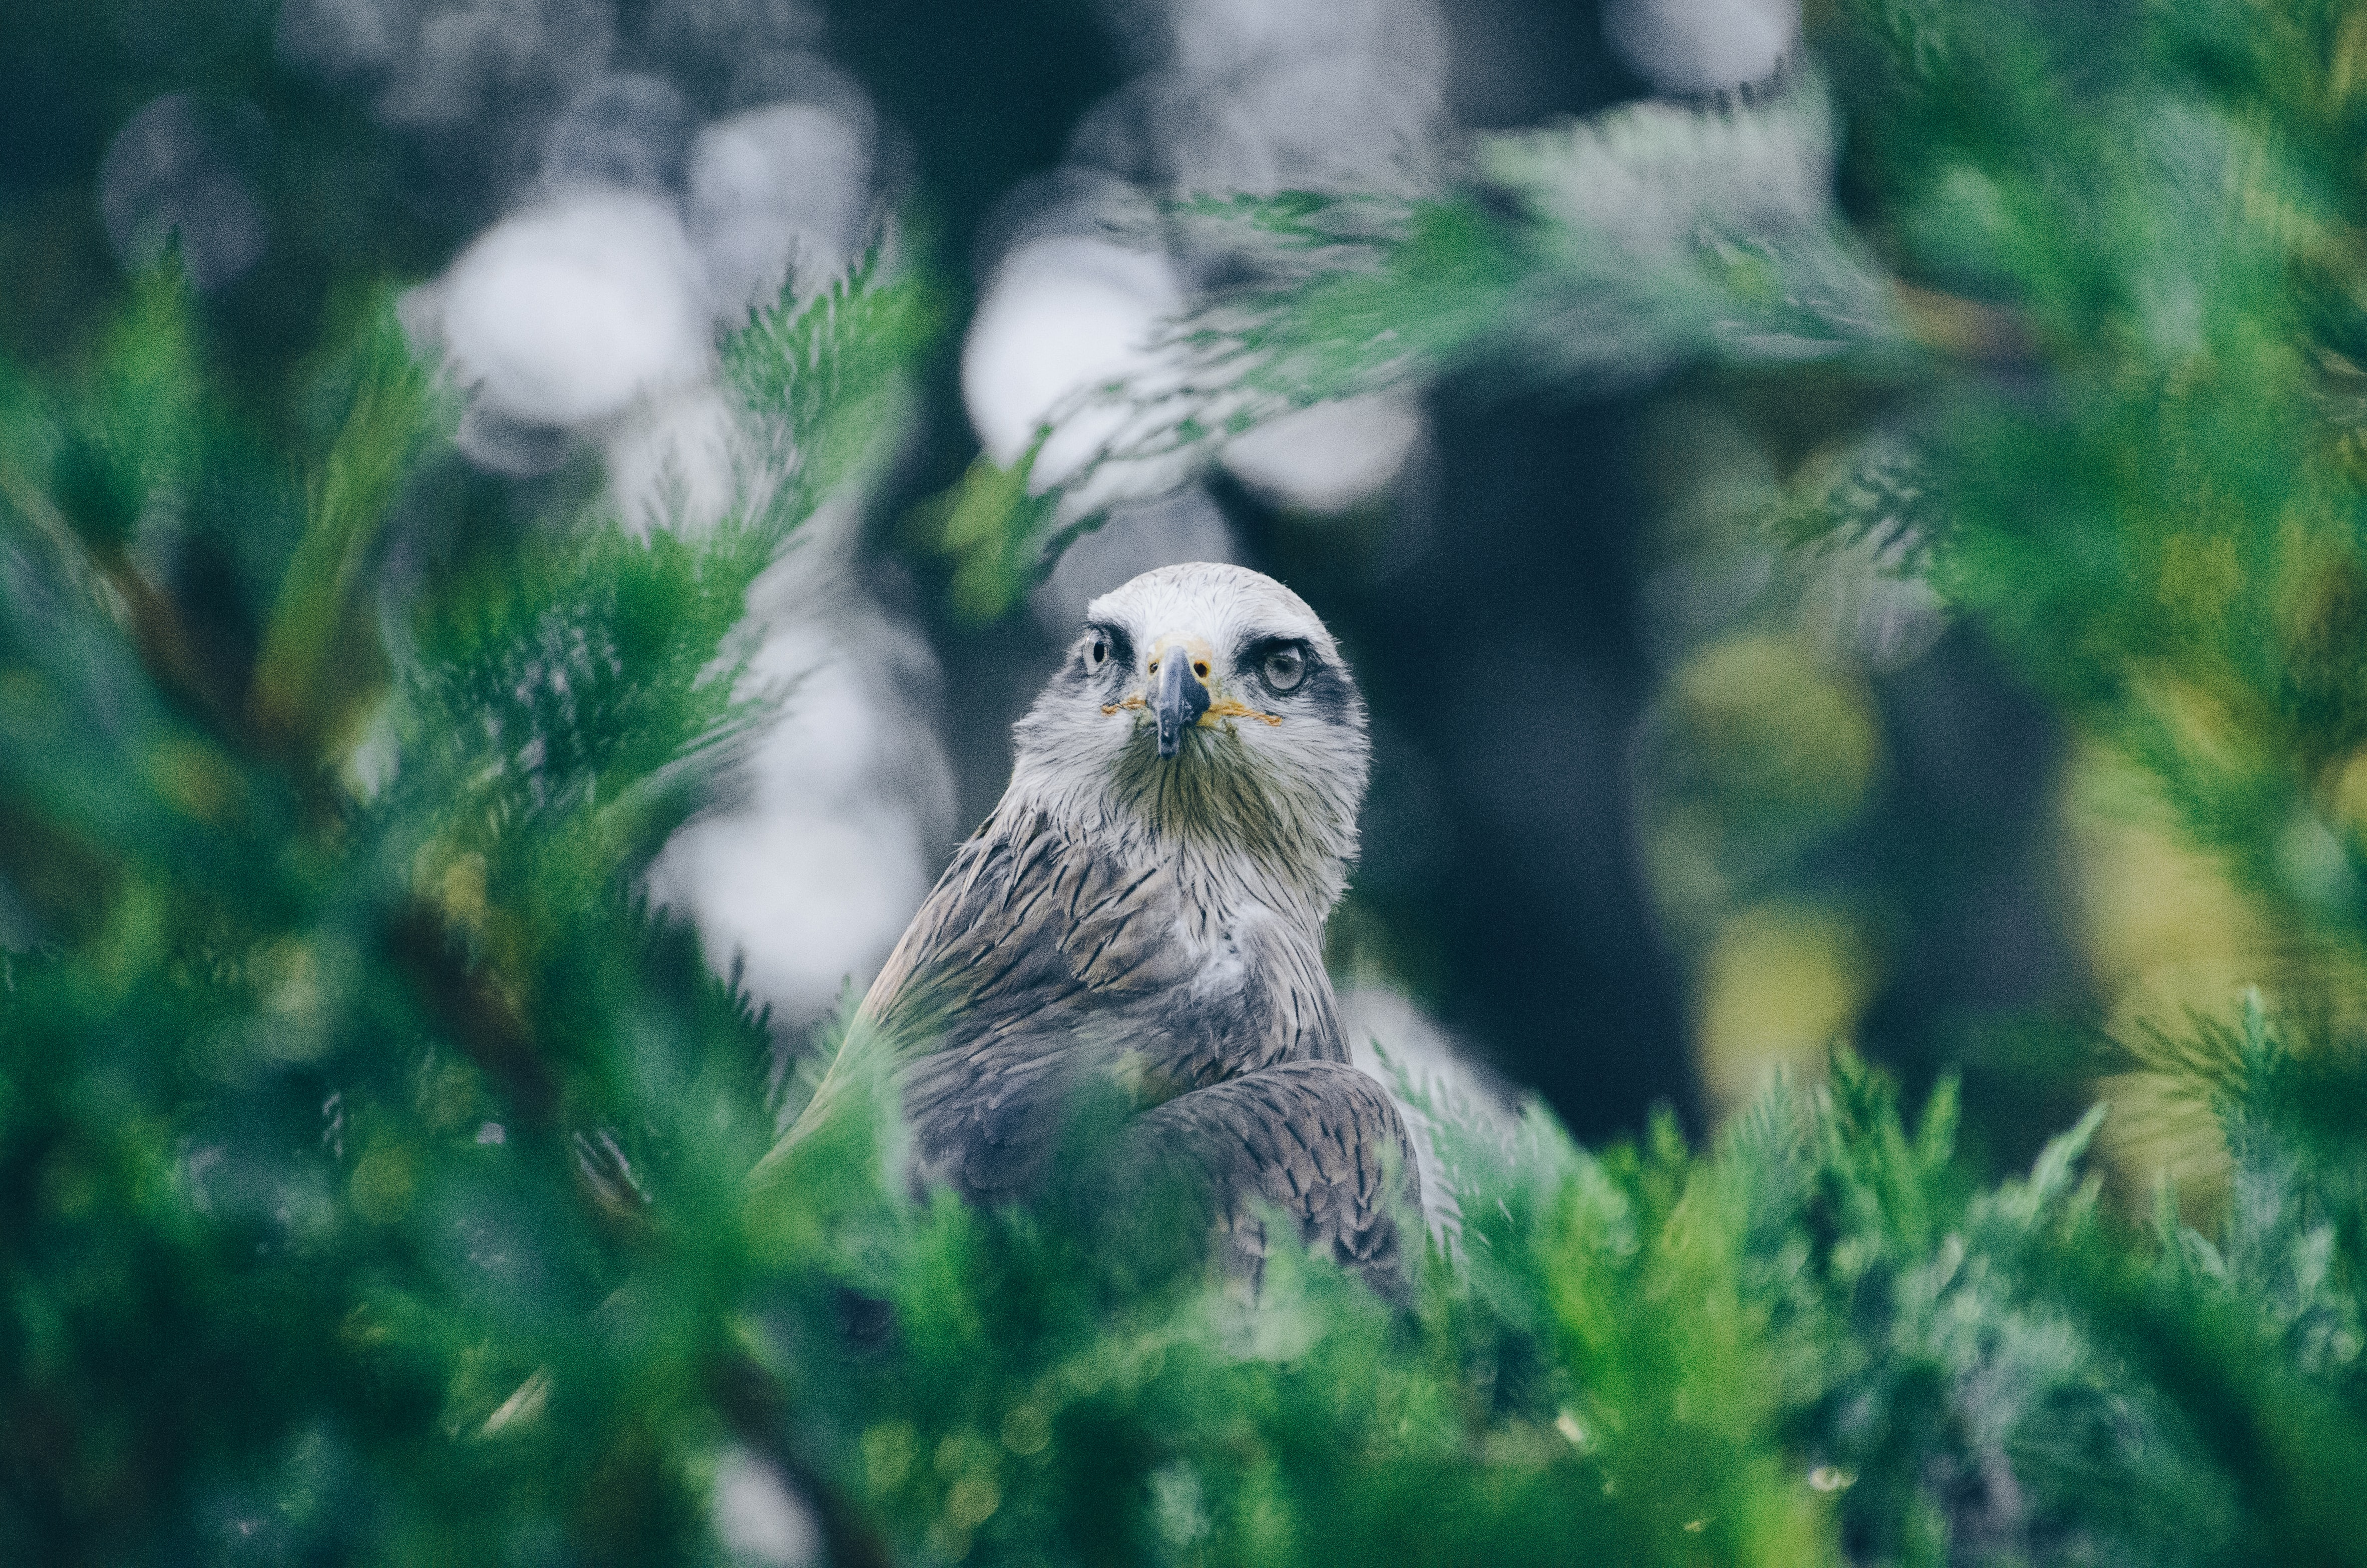 A shot of a sharp-beaked bird in the branches of a green tree